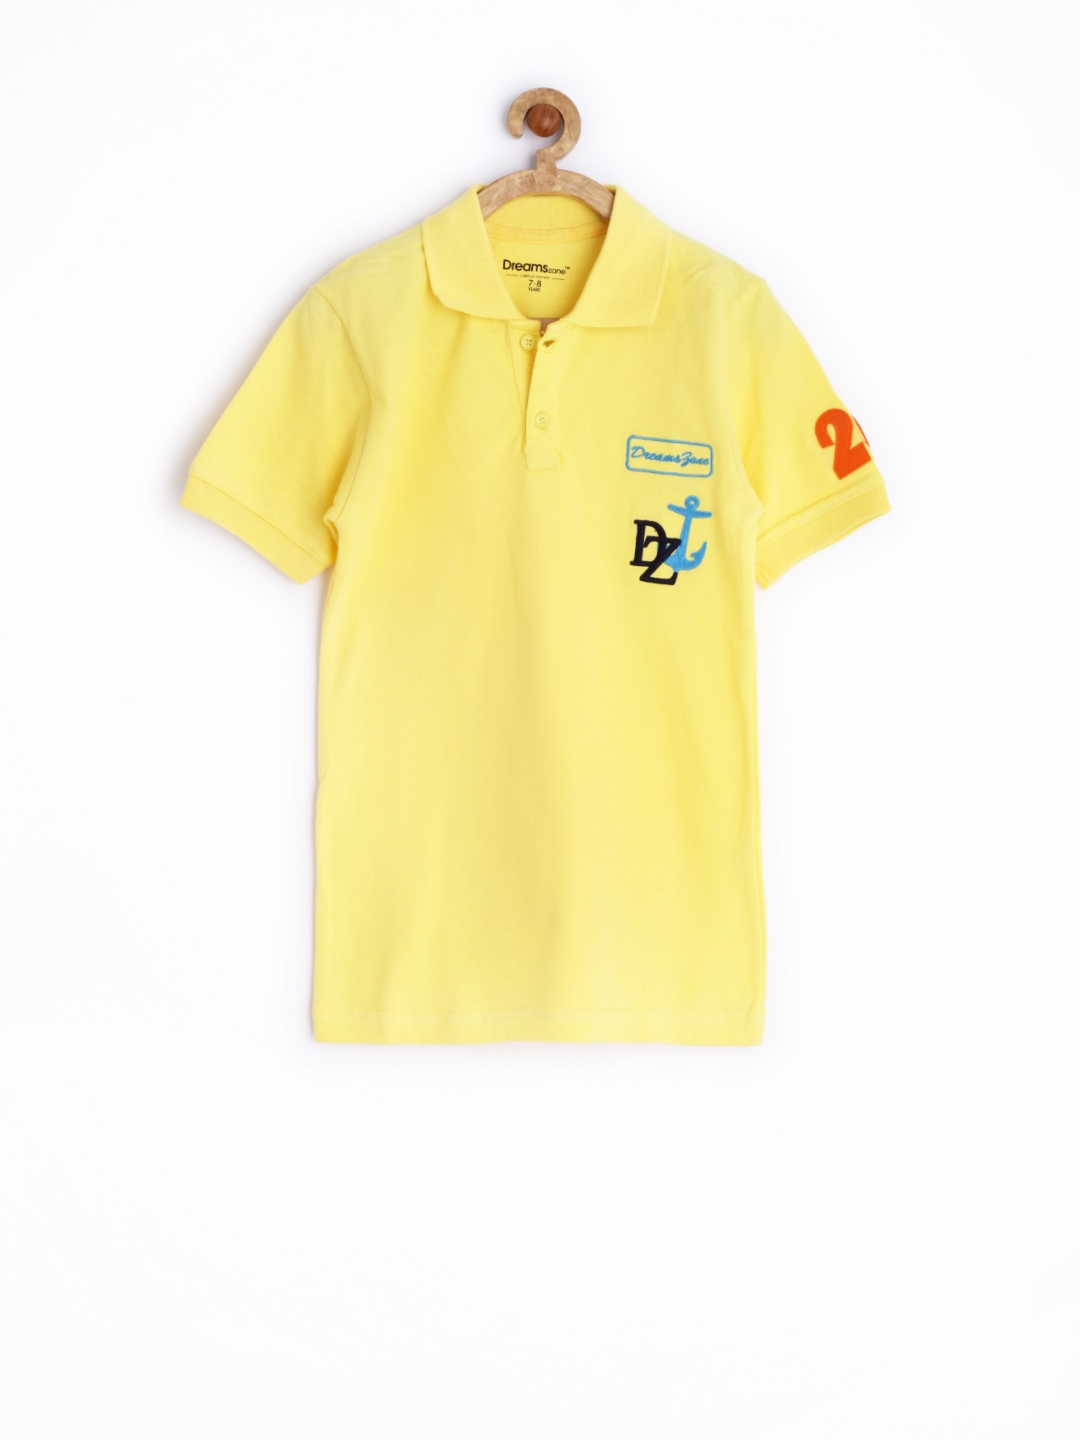 Myntra Dreamszone Boys Yellow Polo T Shirt 664213 Buy